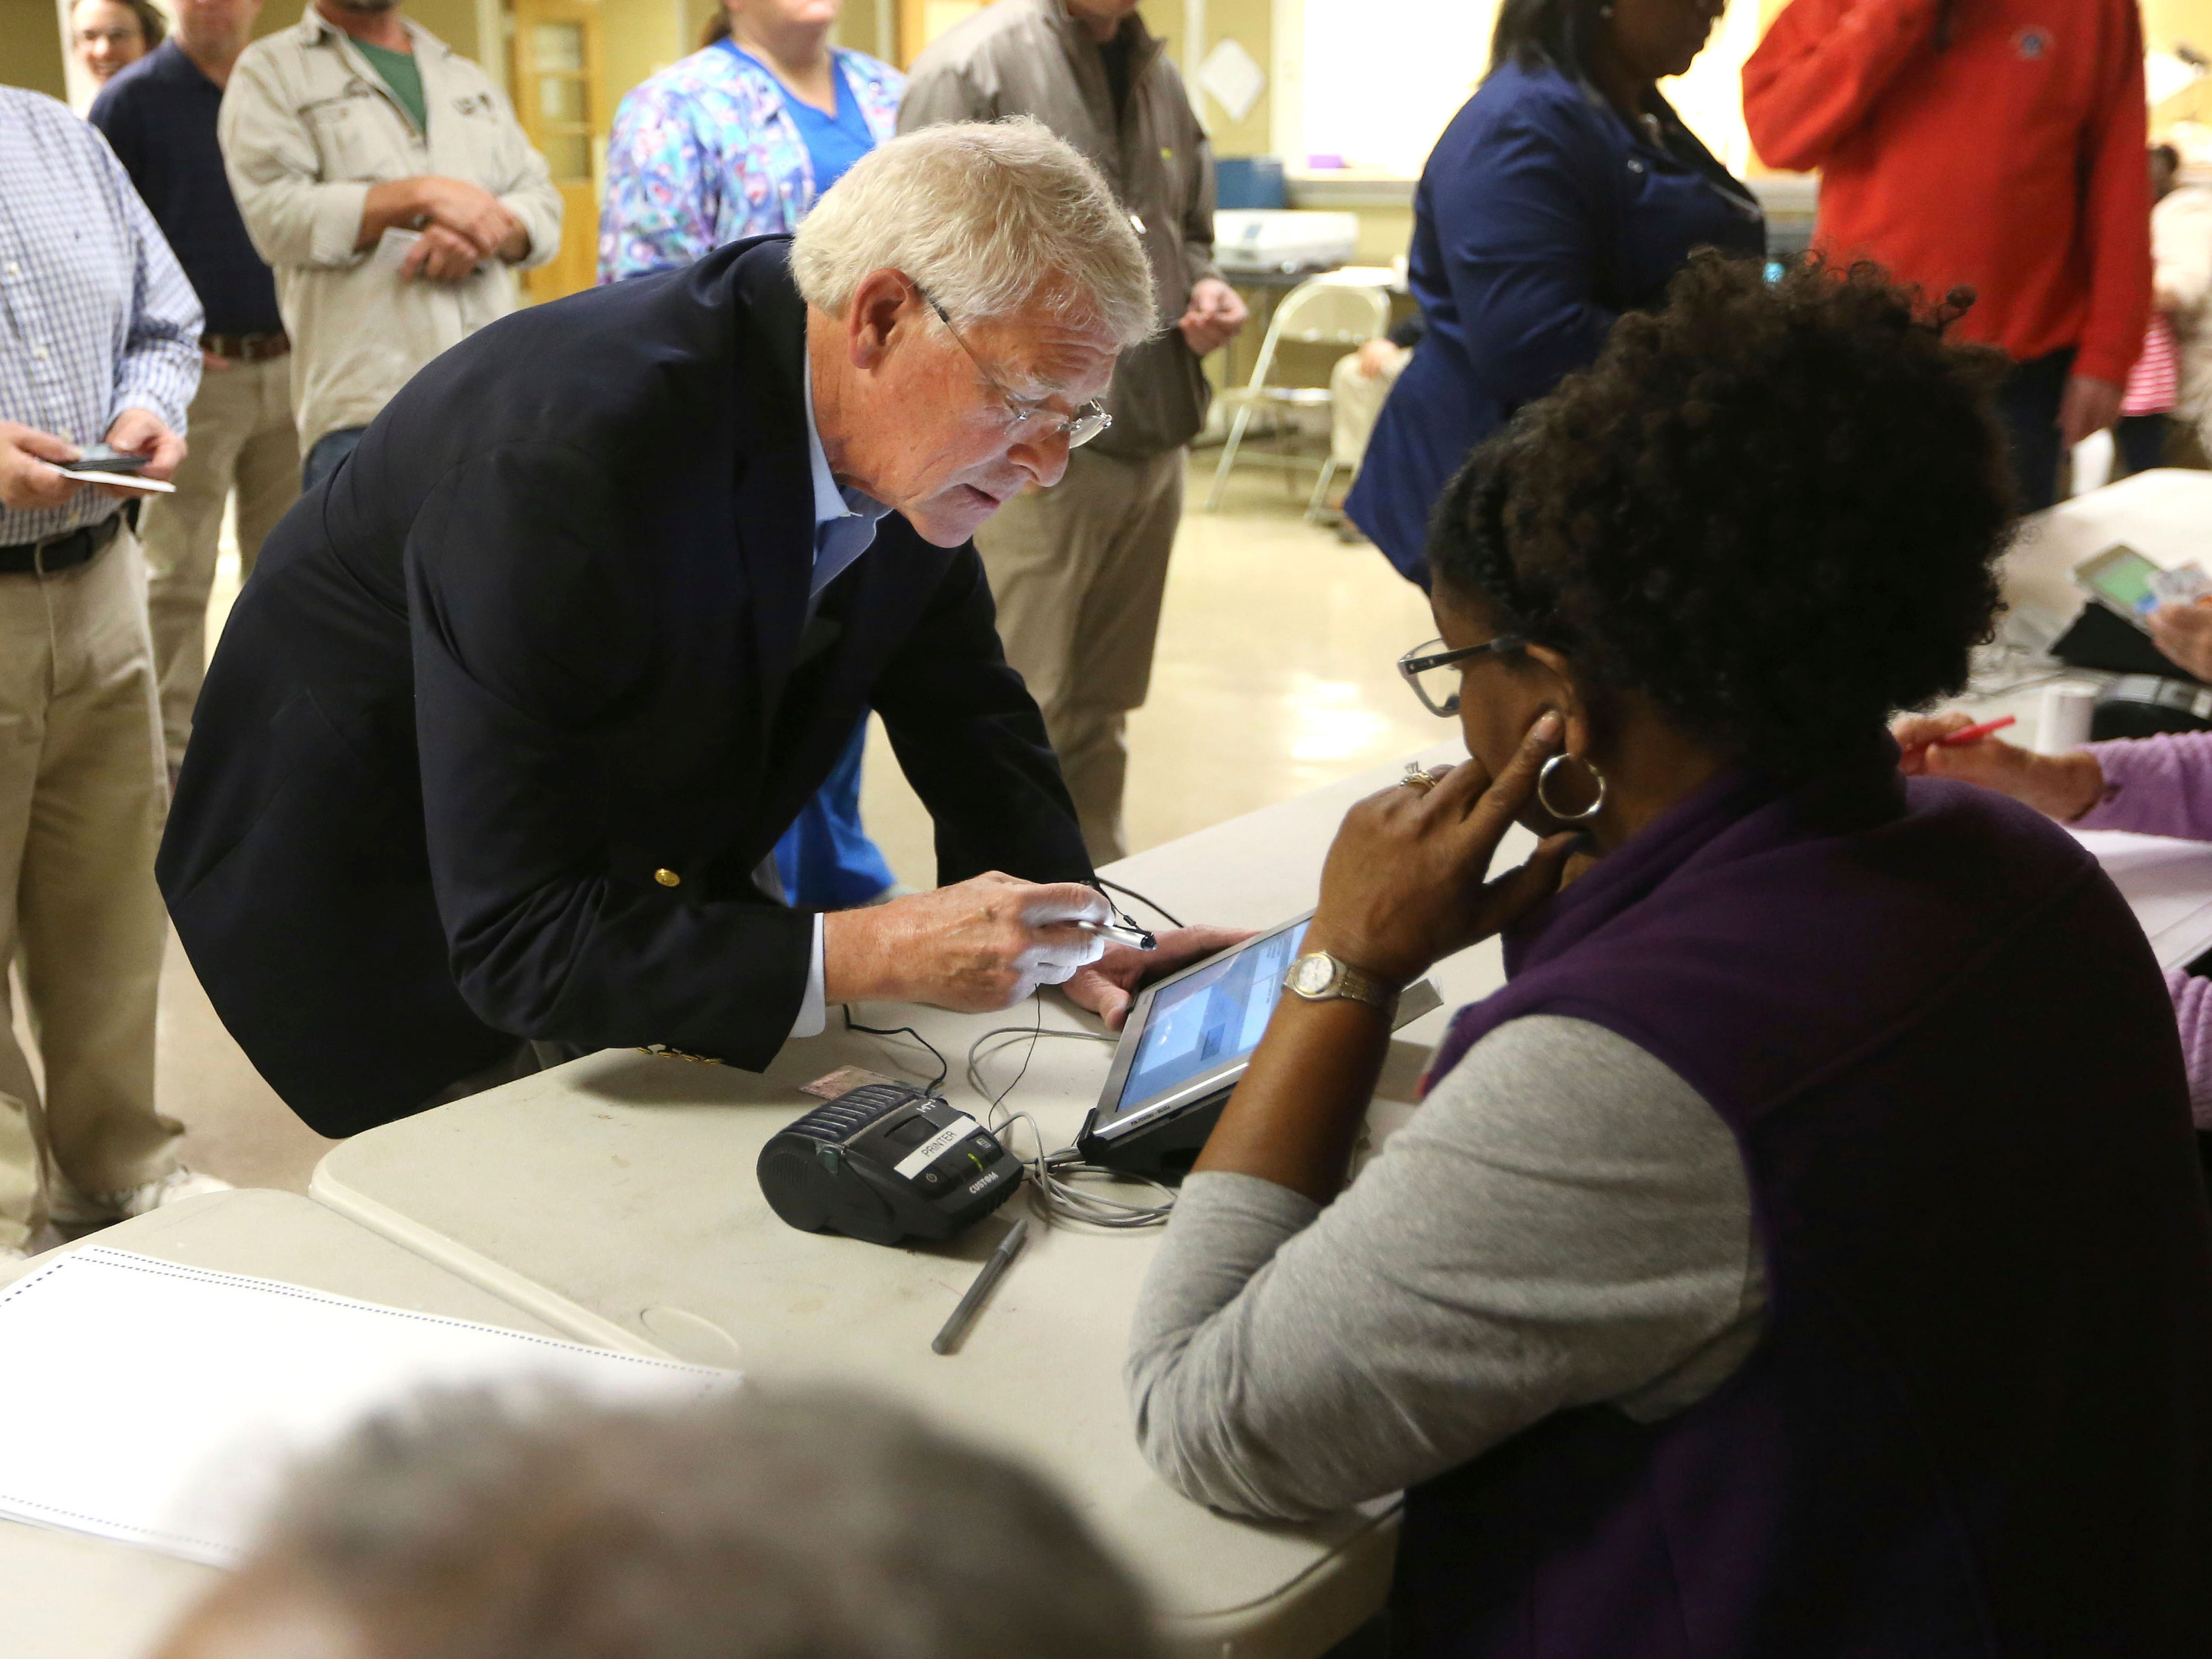 U.S. Senator Roger Wicker, R-Miss., signs in to vote in the midterm elections Tuesday morning, Nov. 6, 2018, in Tupelo, Miss. Wicker, who seeks reelection, faces several opponents, including State Rep. David Baria, D-Bay St. Louis.